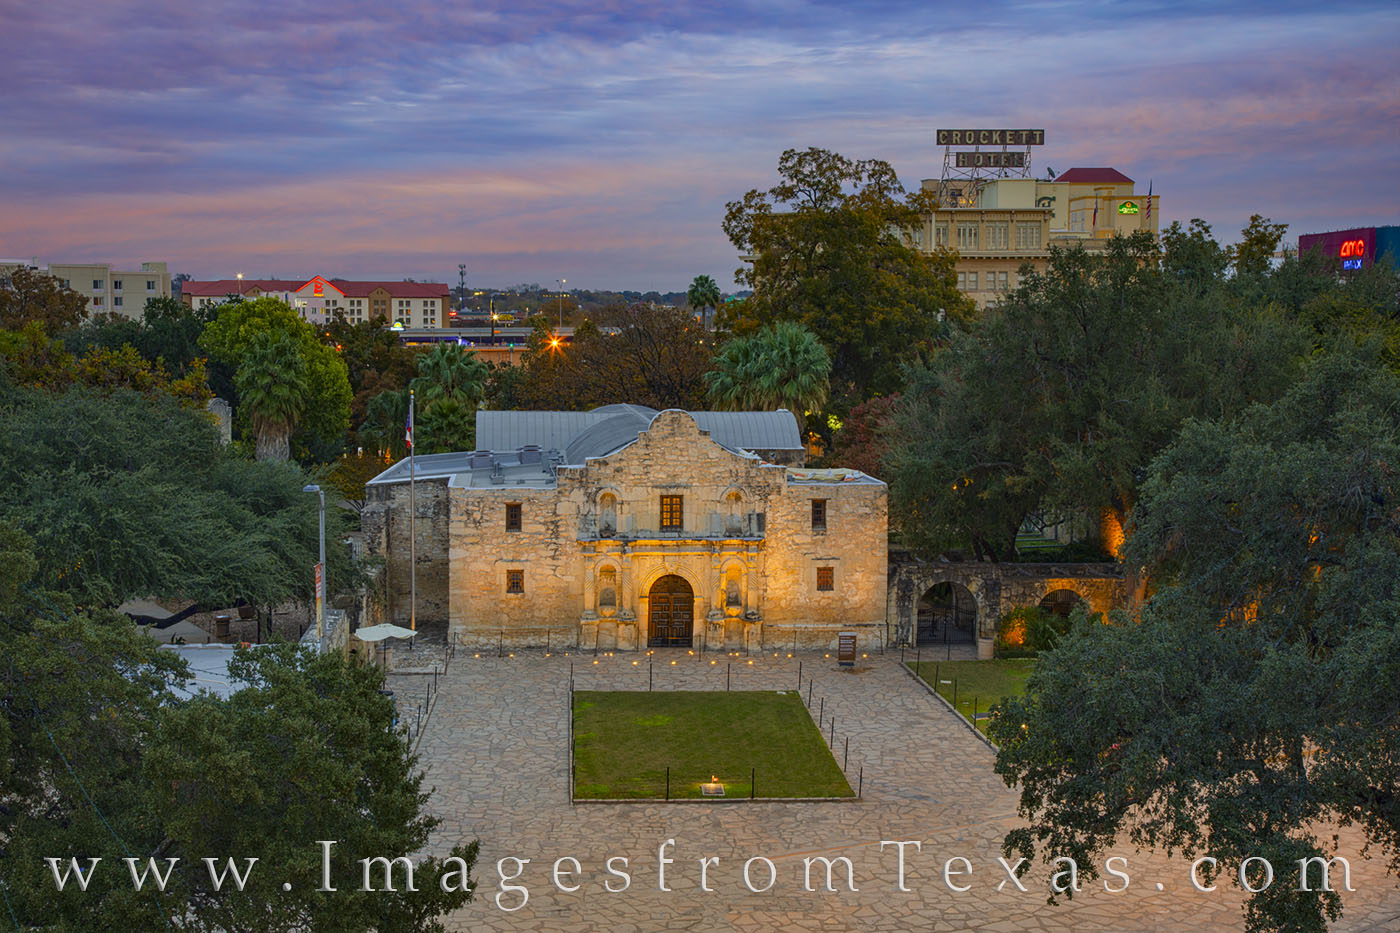 alamo, san antonio, riverwalk, downtown, history, crocket motel, san antonio missions, mission, photo